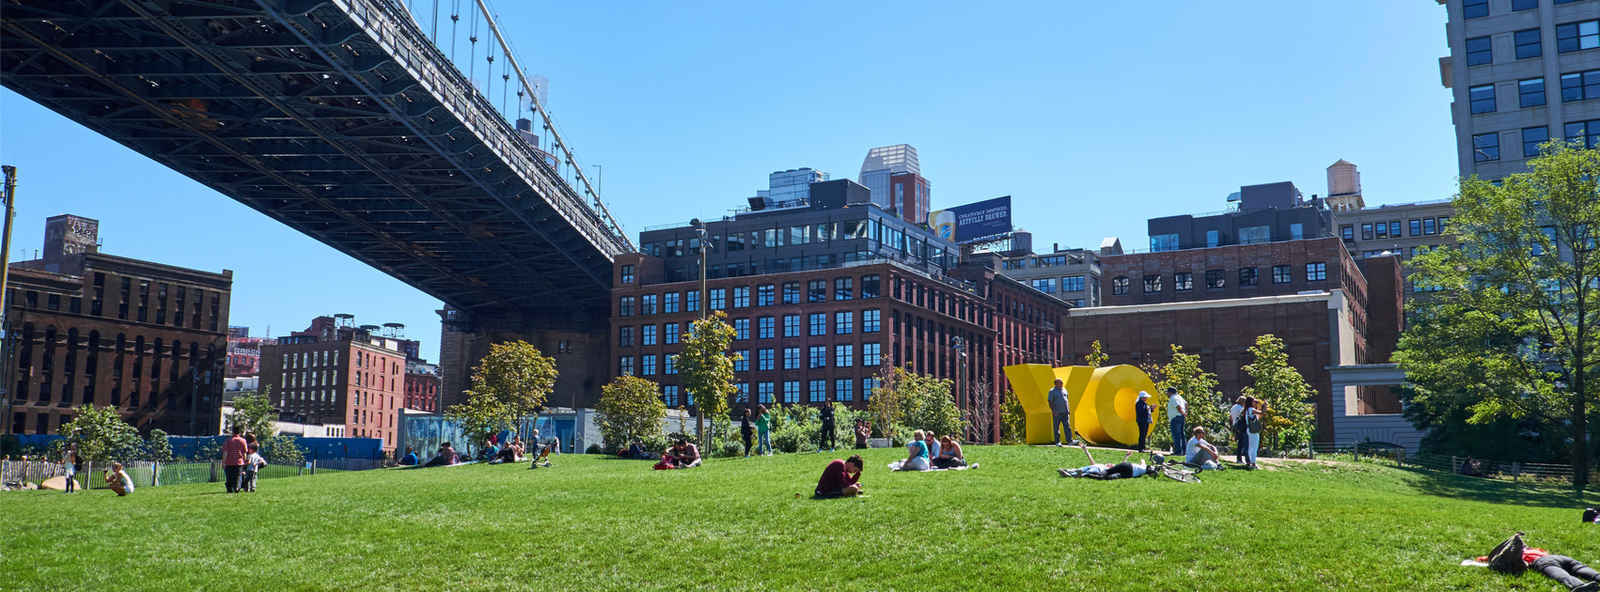 Main Street Park in Dumbo neighborhood of Brooklyn